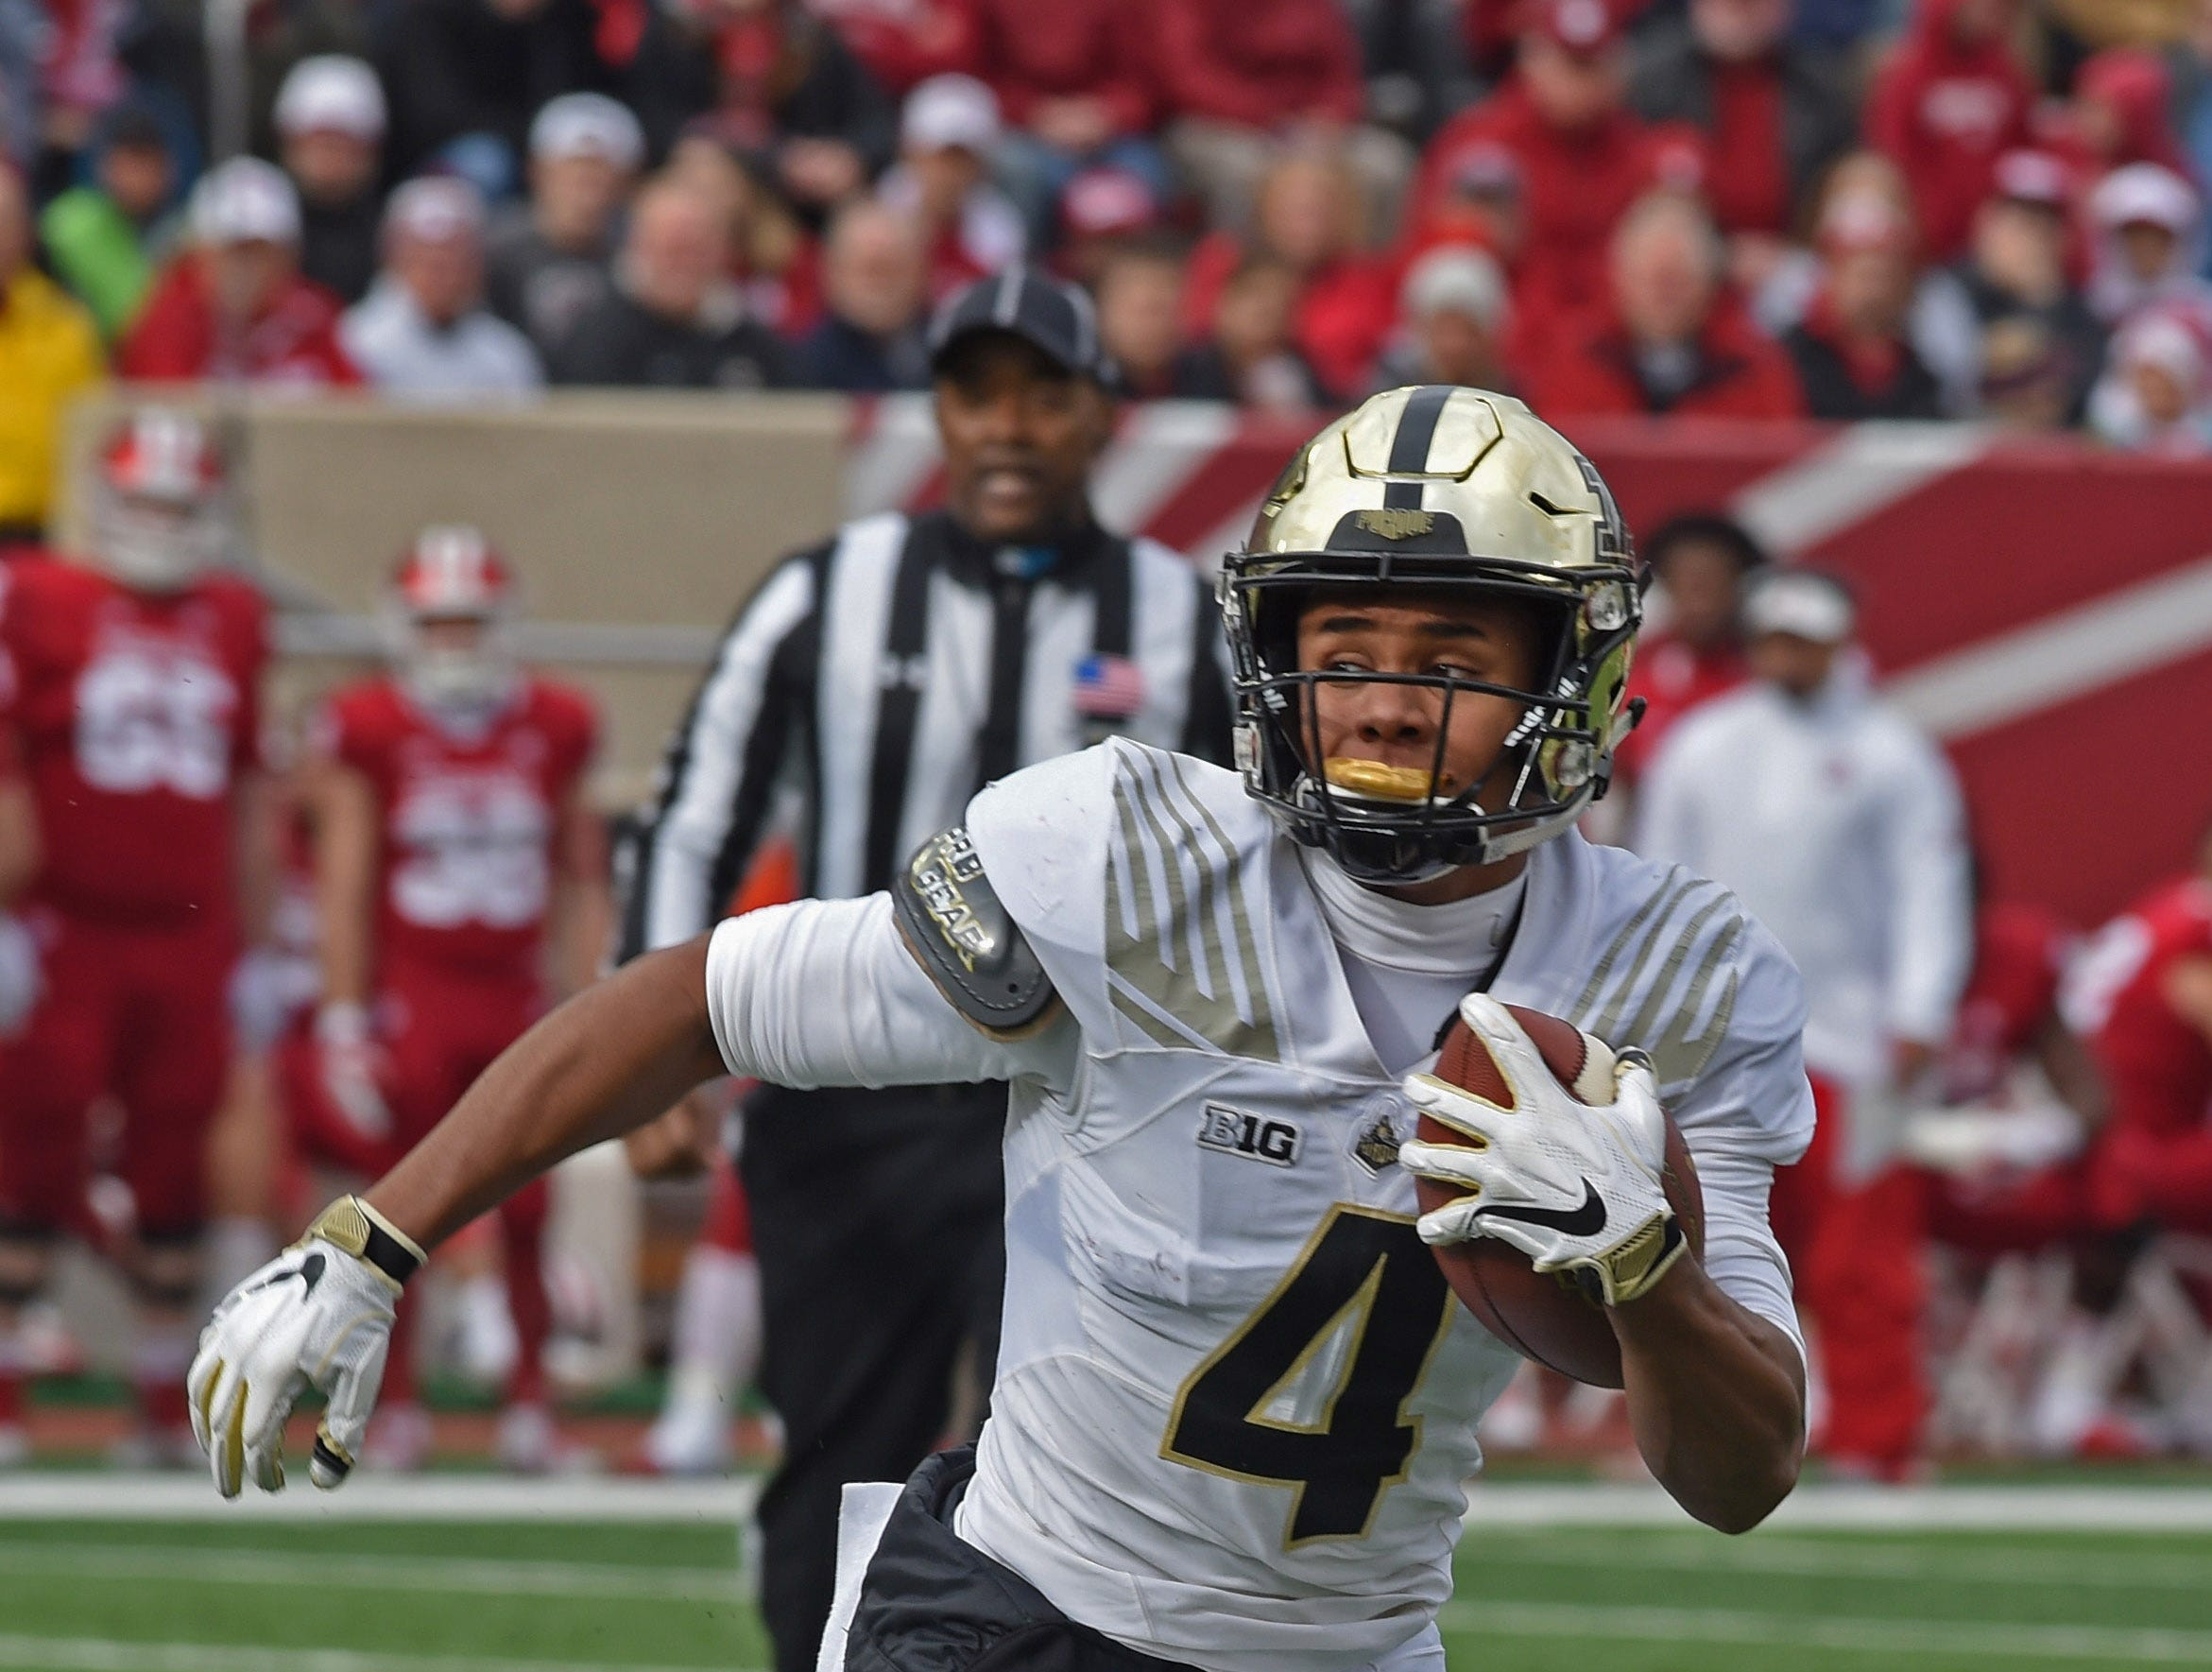 The Boilermaker faithful enjoyed a beautiful day in IU's Memorial Stadium as Purdue retains the Bucket for 2018. Rondale Moore.